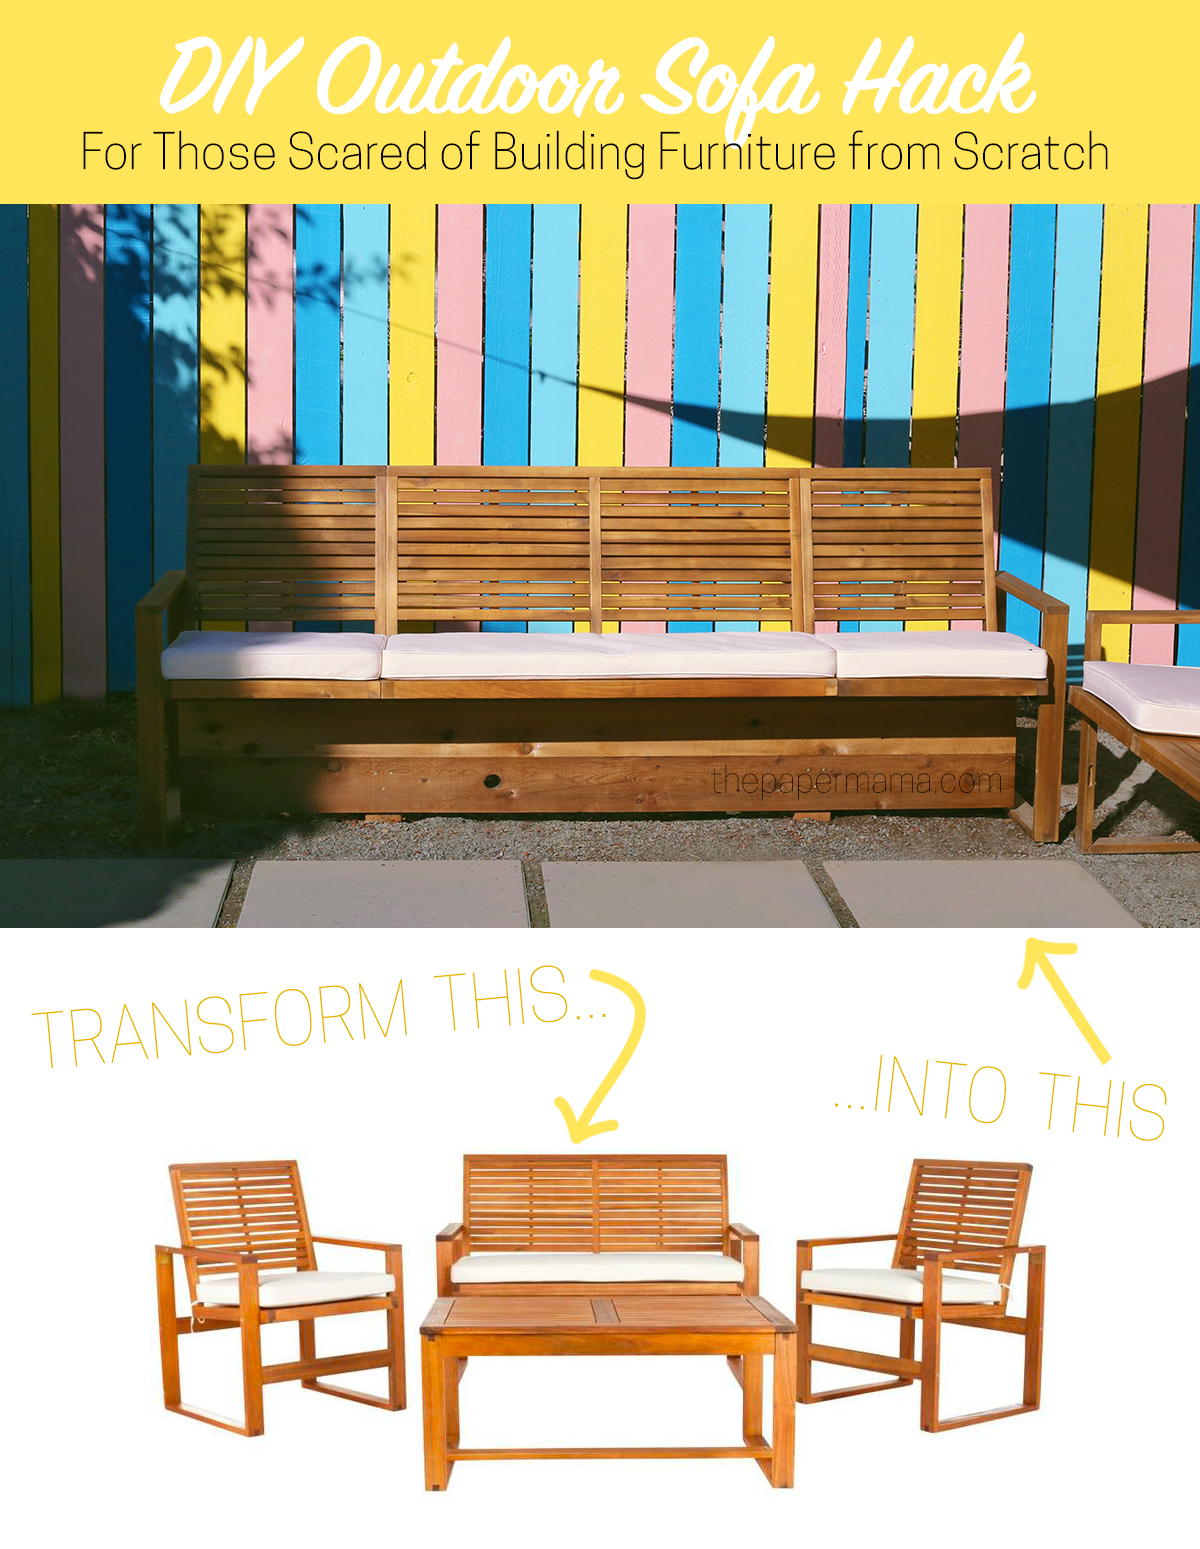 My DIY Outdoor Sofa Hack – For Those Scared of Building Furniture from Scratch